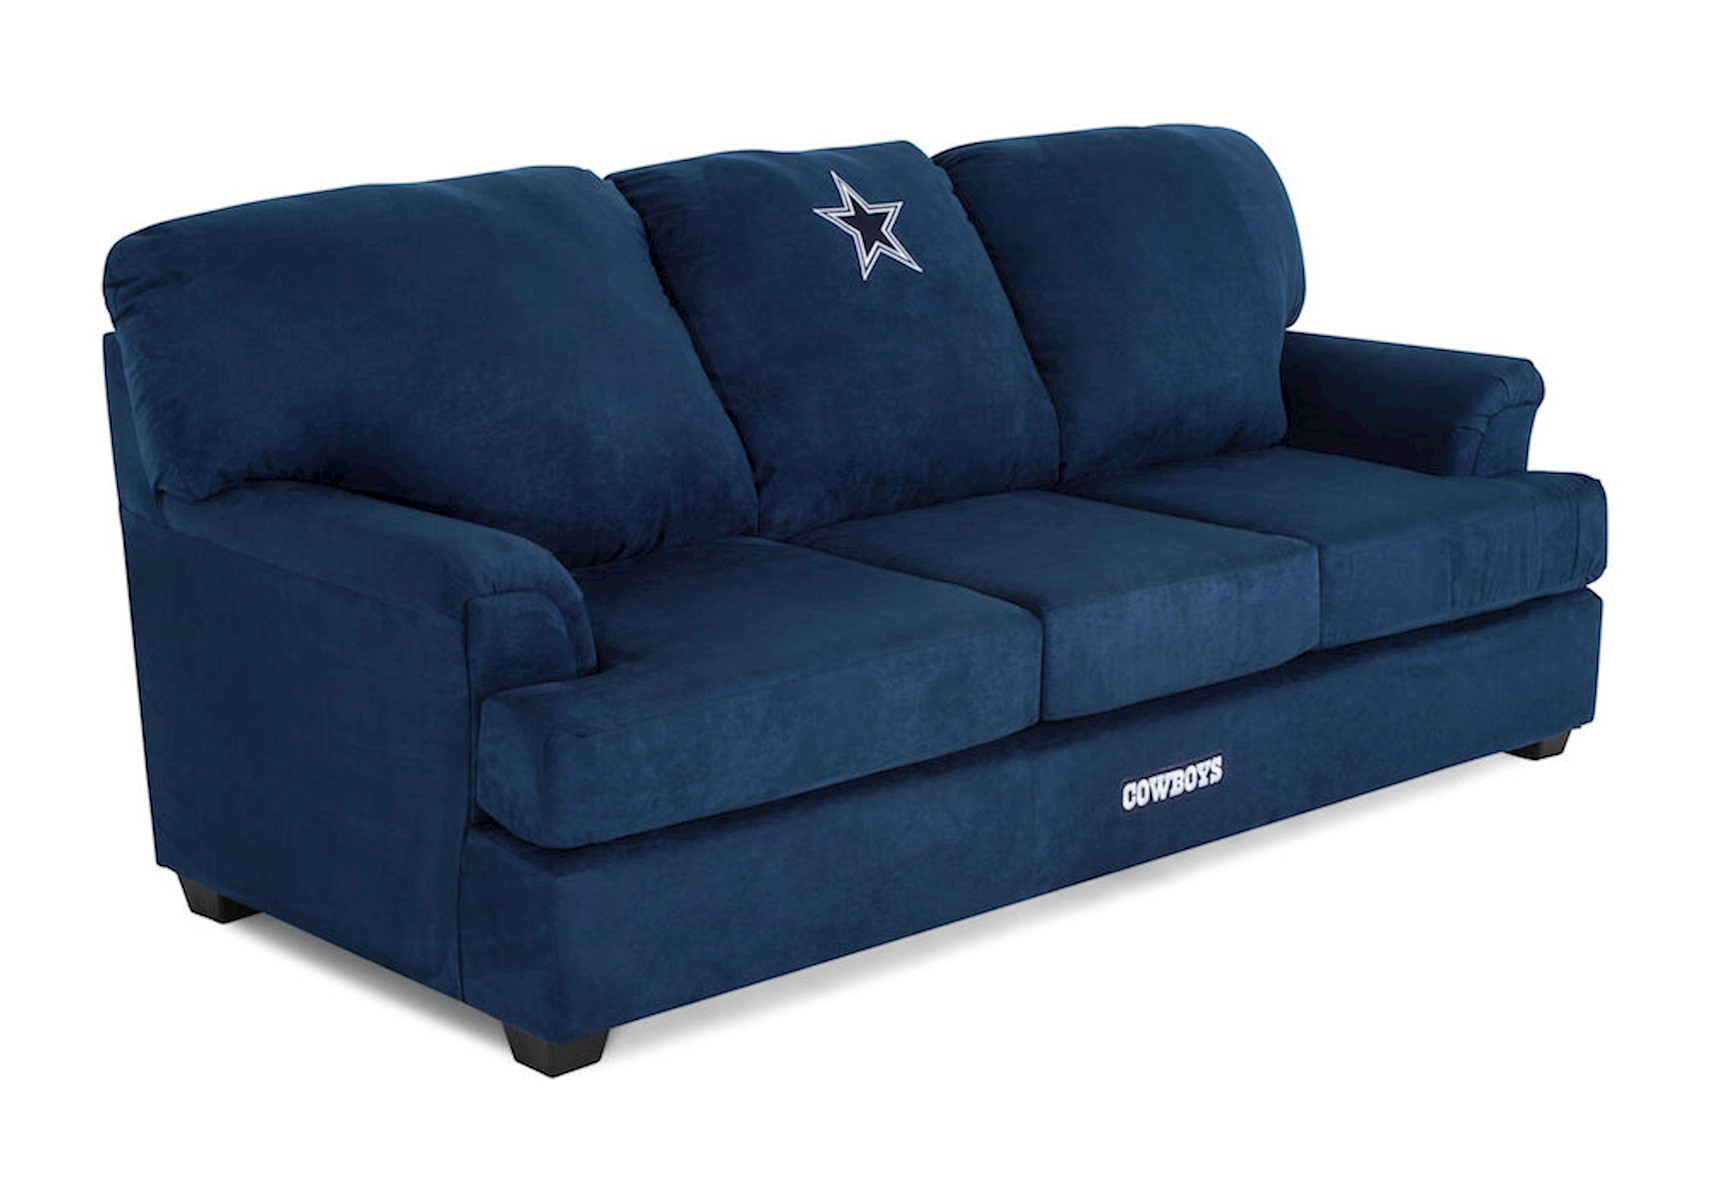 Dallas Cowboys Sofa Dallas Cowboys Convertible Sofa W Tray